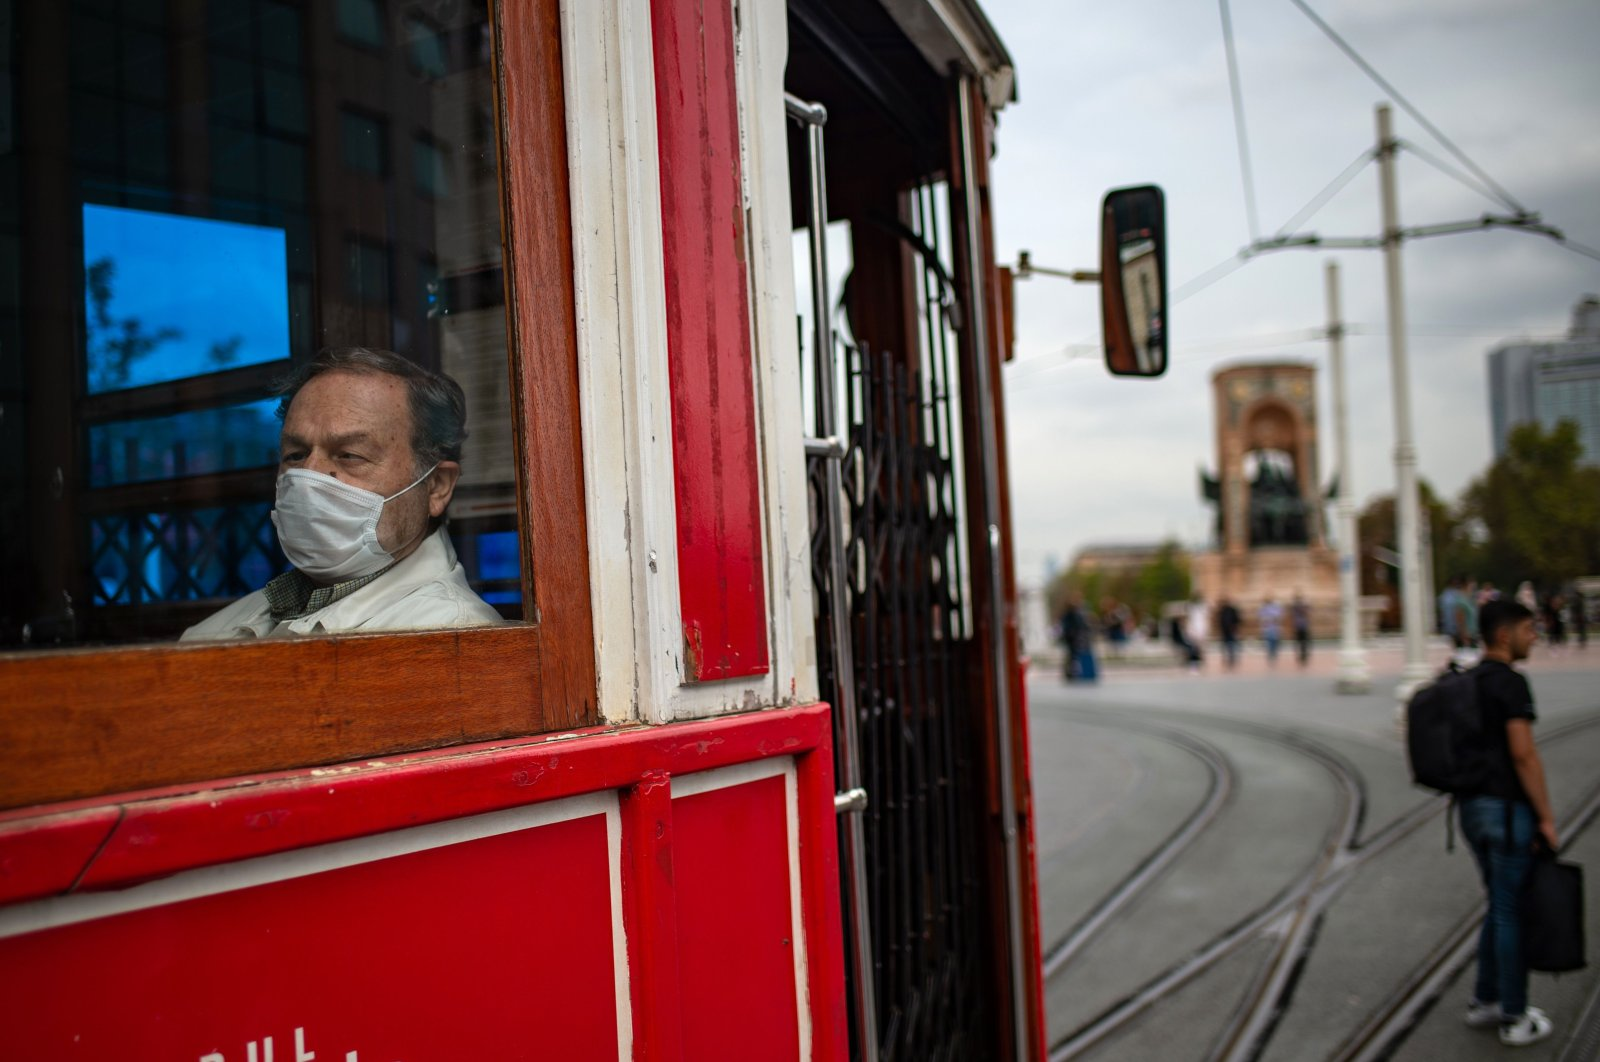 A commuter wearing face mask sits in a tram on Istiklal Street, in Istanbul, on October 9, 2020. (AFP Photo)